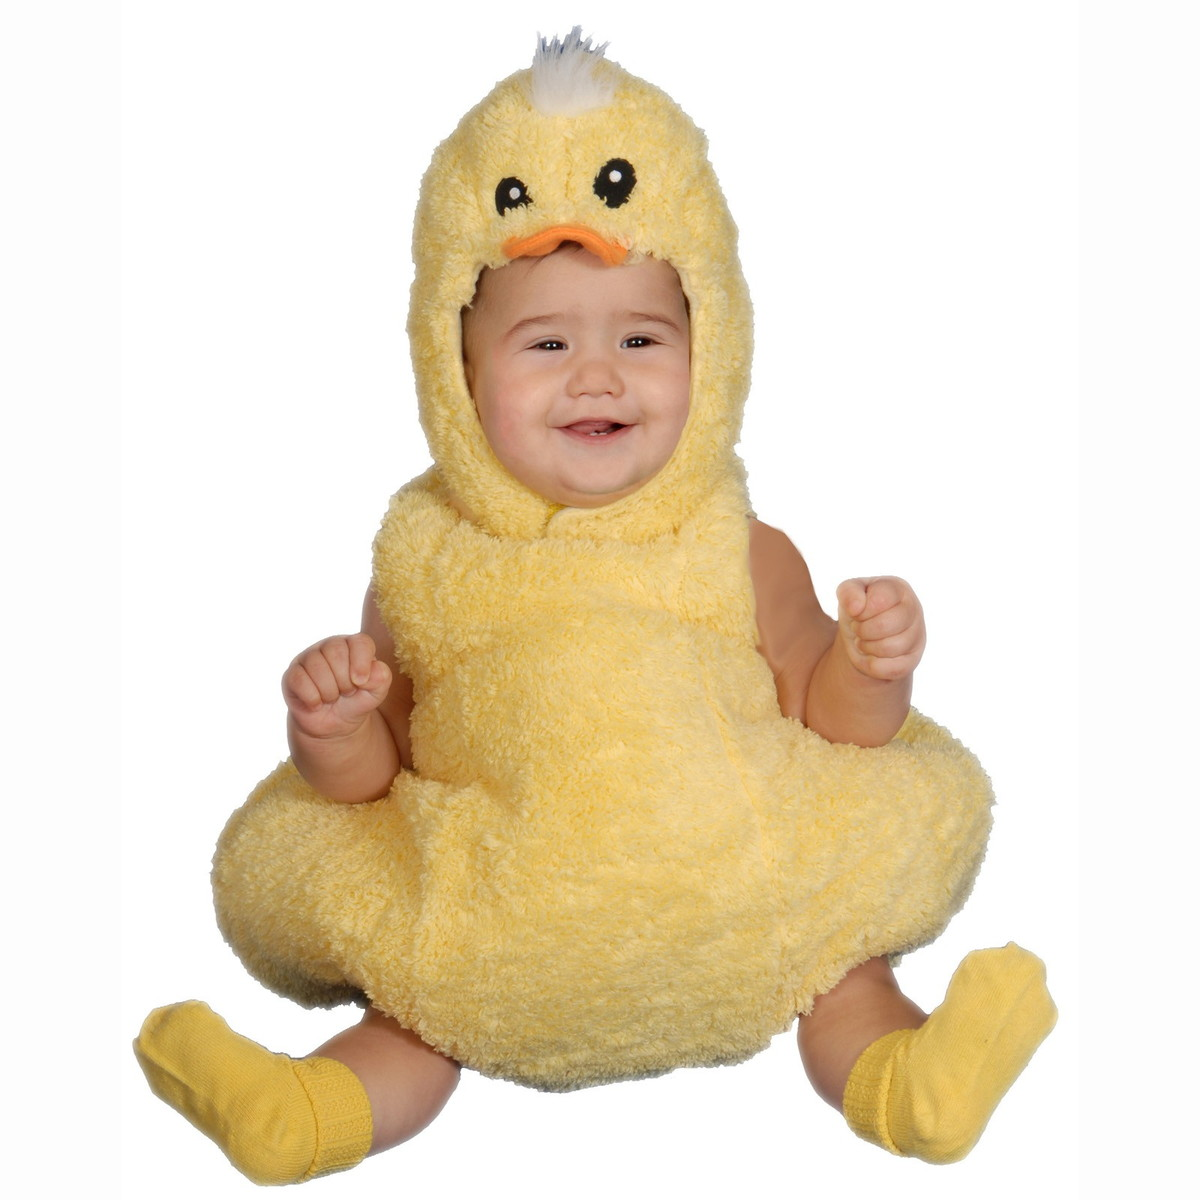 Halloween costumes kids costume baby animal Kids Halloween cosplay duck  sc 1 st  Rakuten & acomes | Rakuten Global Market: Halloween costumes kids costume baby ...